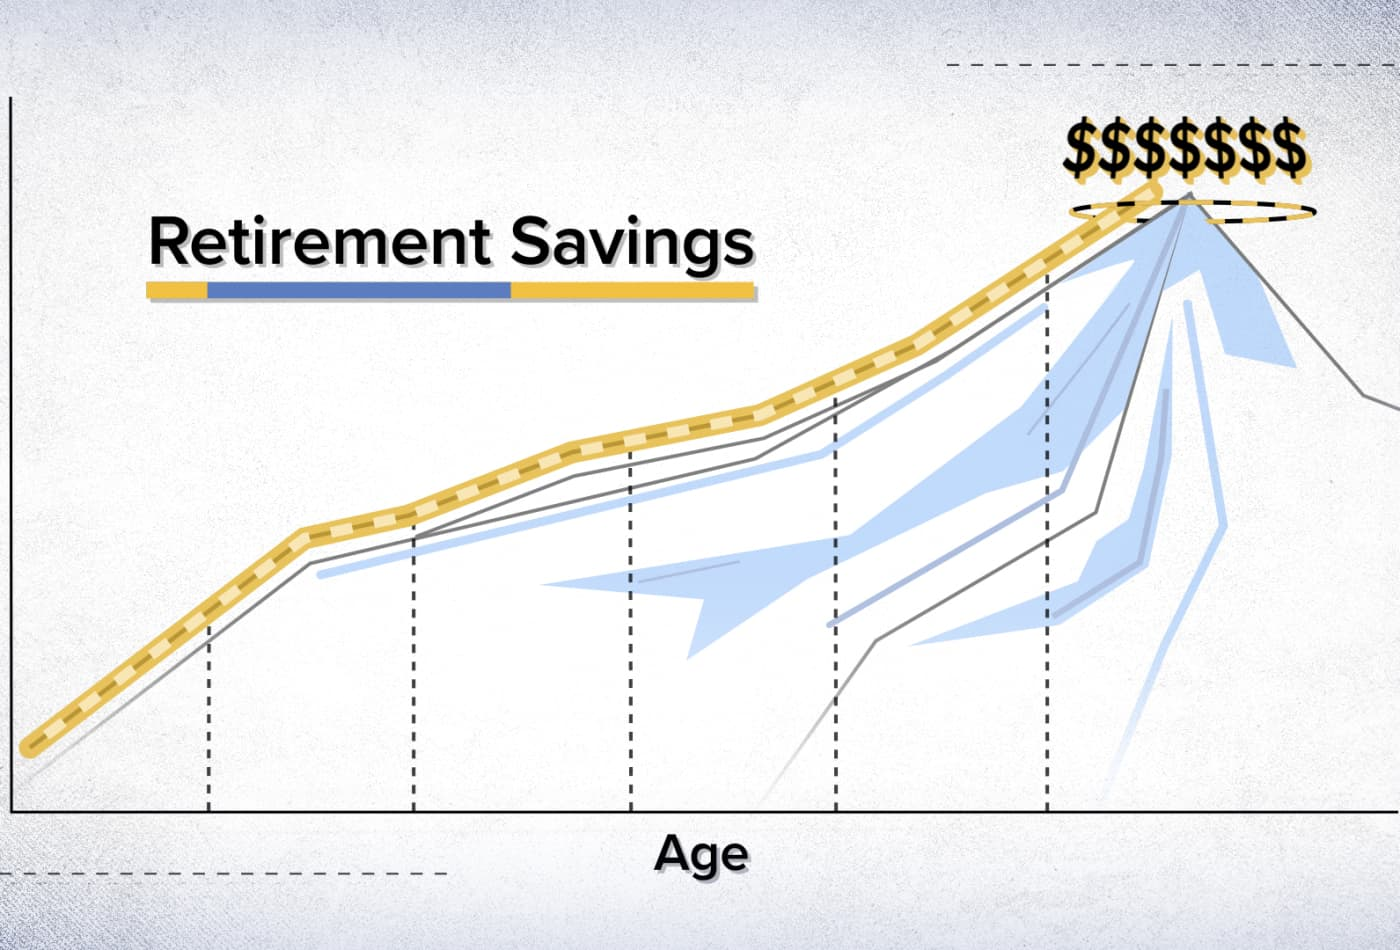 How much you need to invest every month to retire with $1 million to $3 million, broken down by age